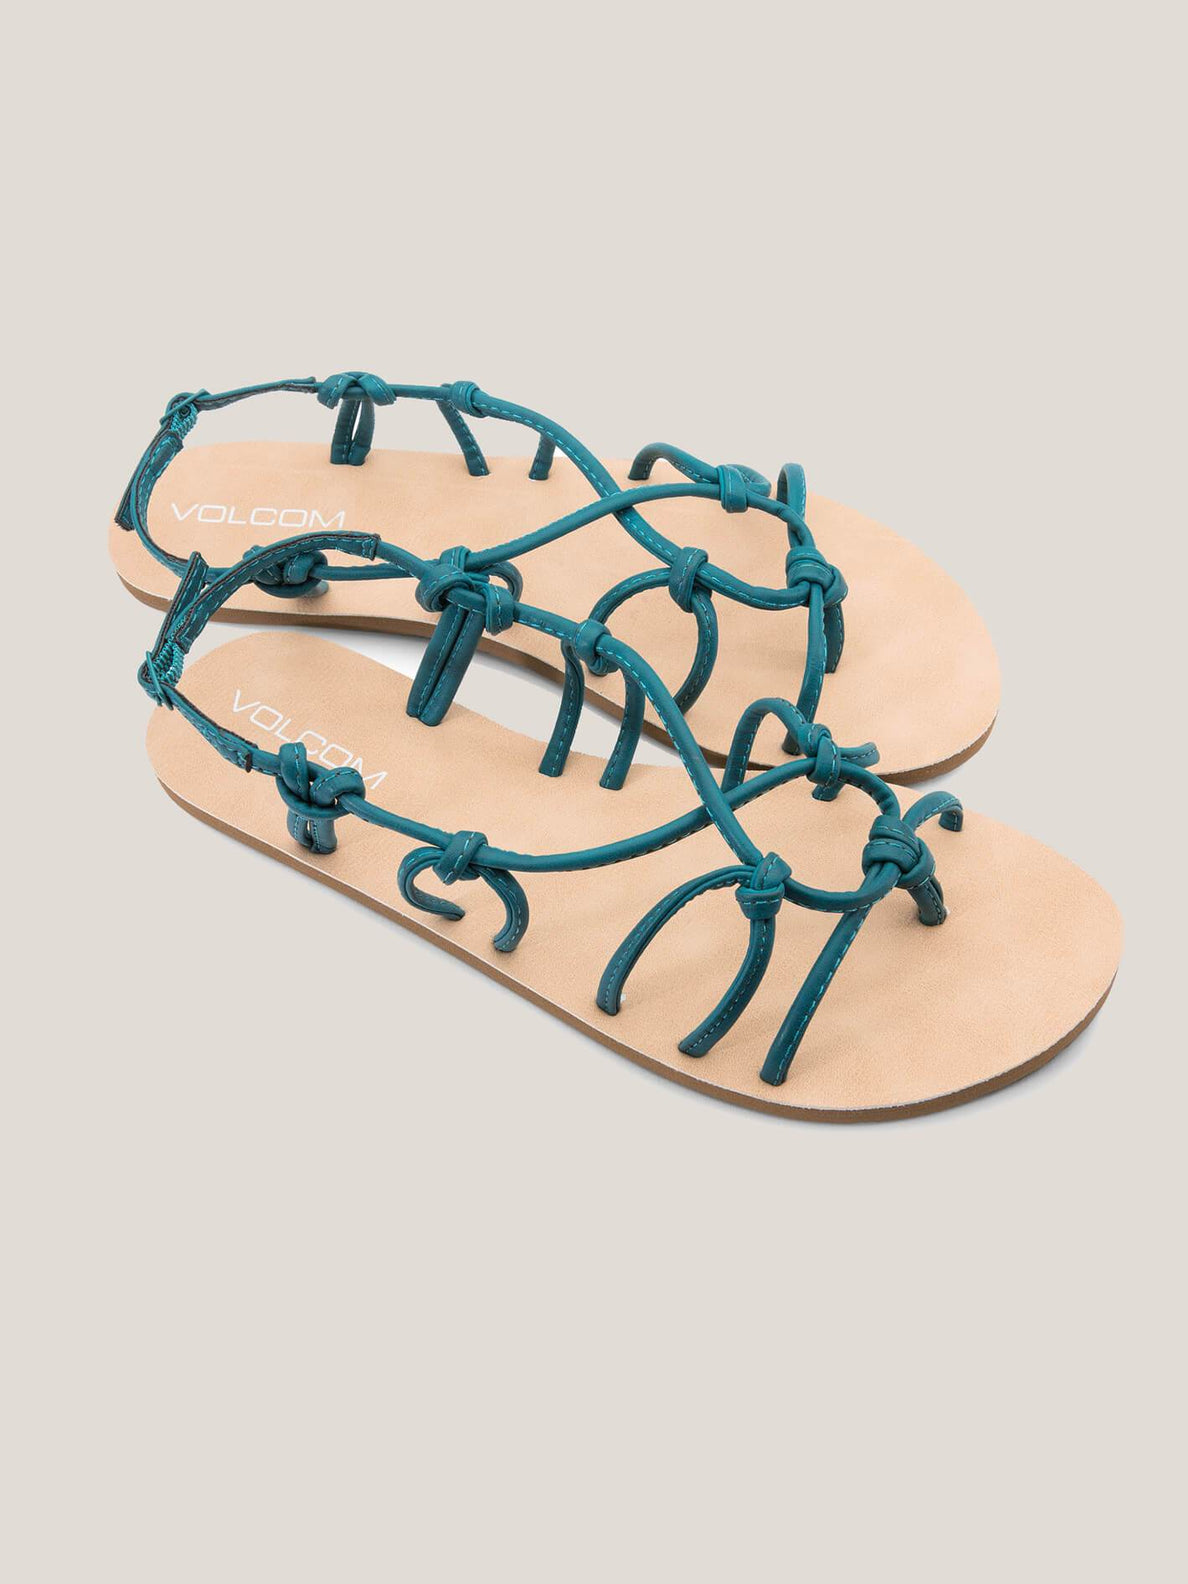 Whateversclever Sandals In Teal, Front View